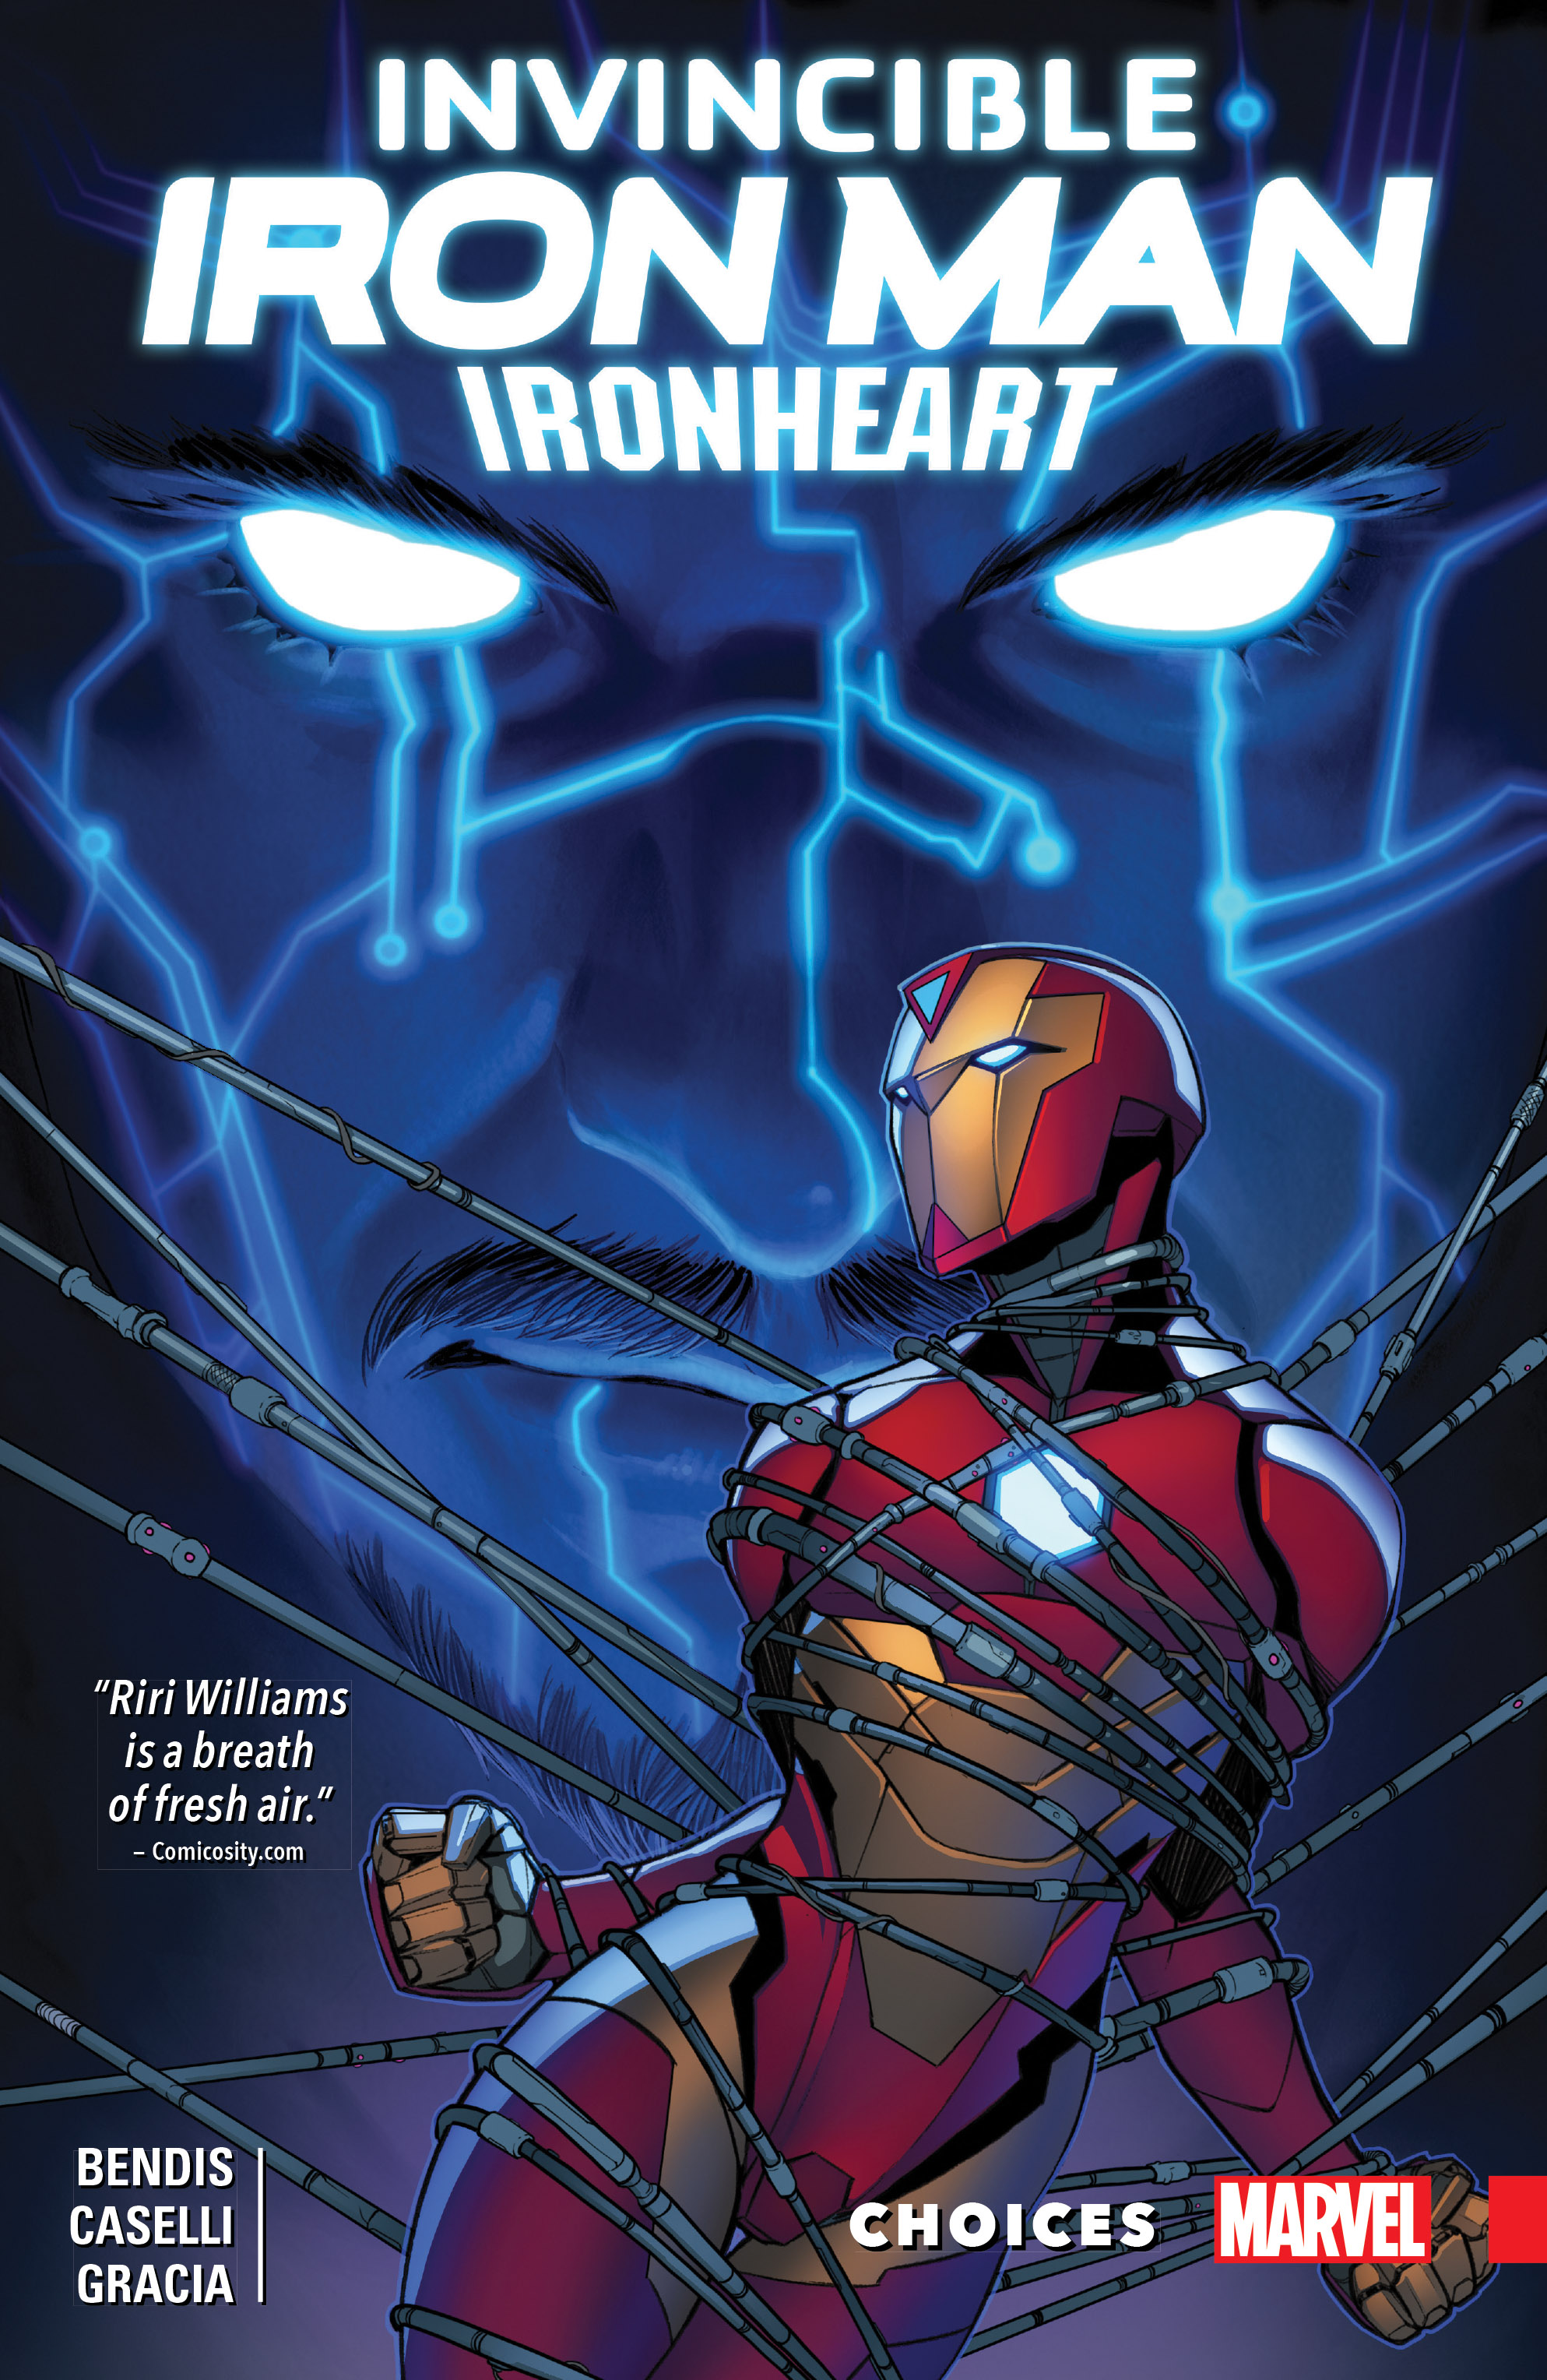 Invincible Iron Man: Ironheart Vol. 2 - Choices (Trade Paperback)